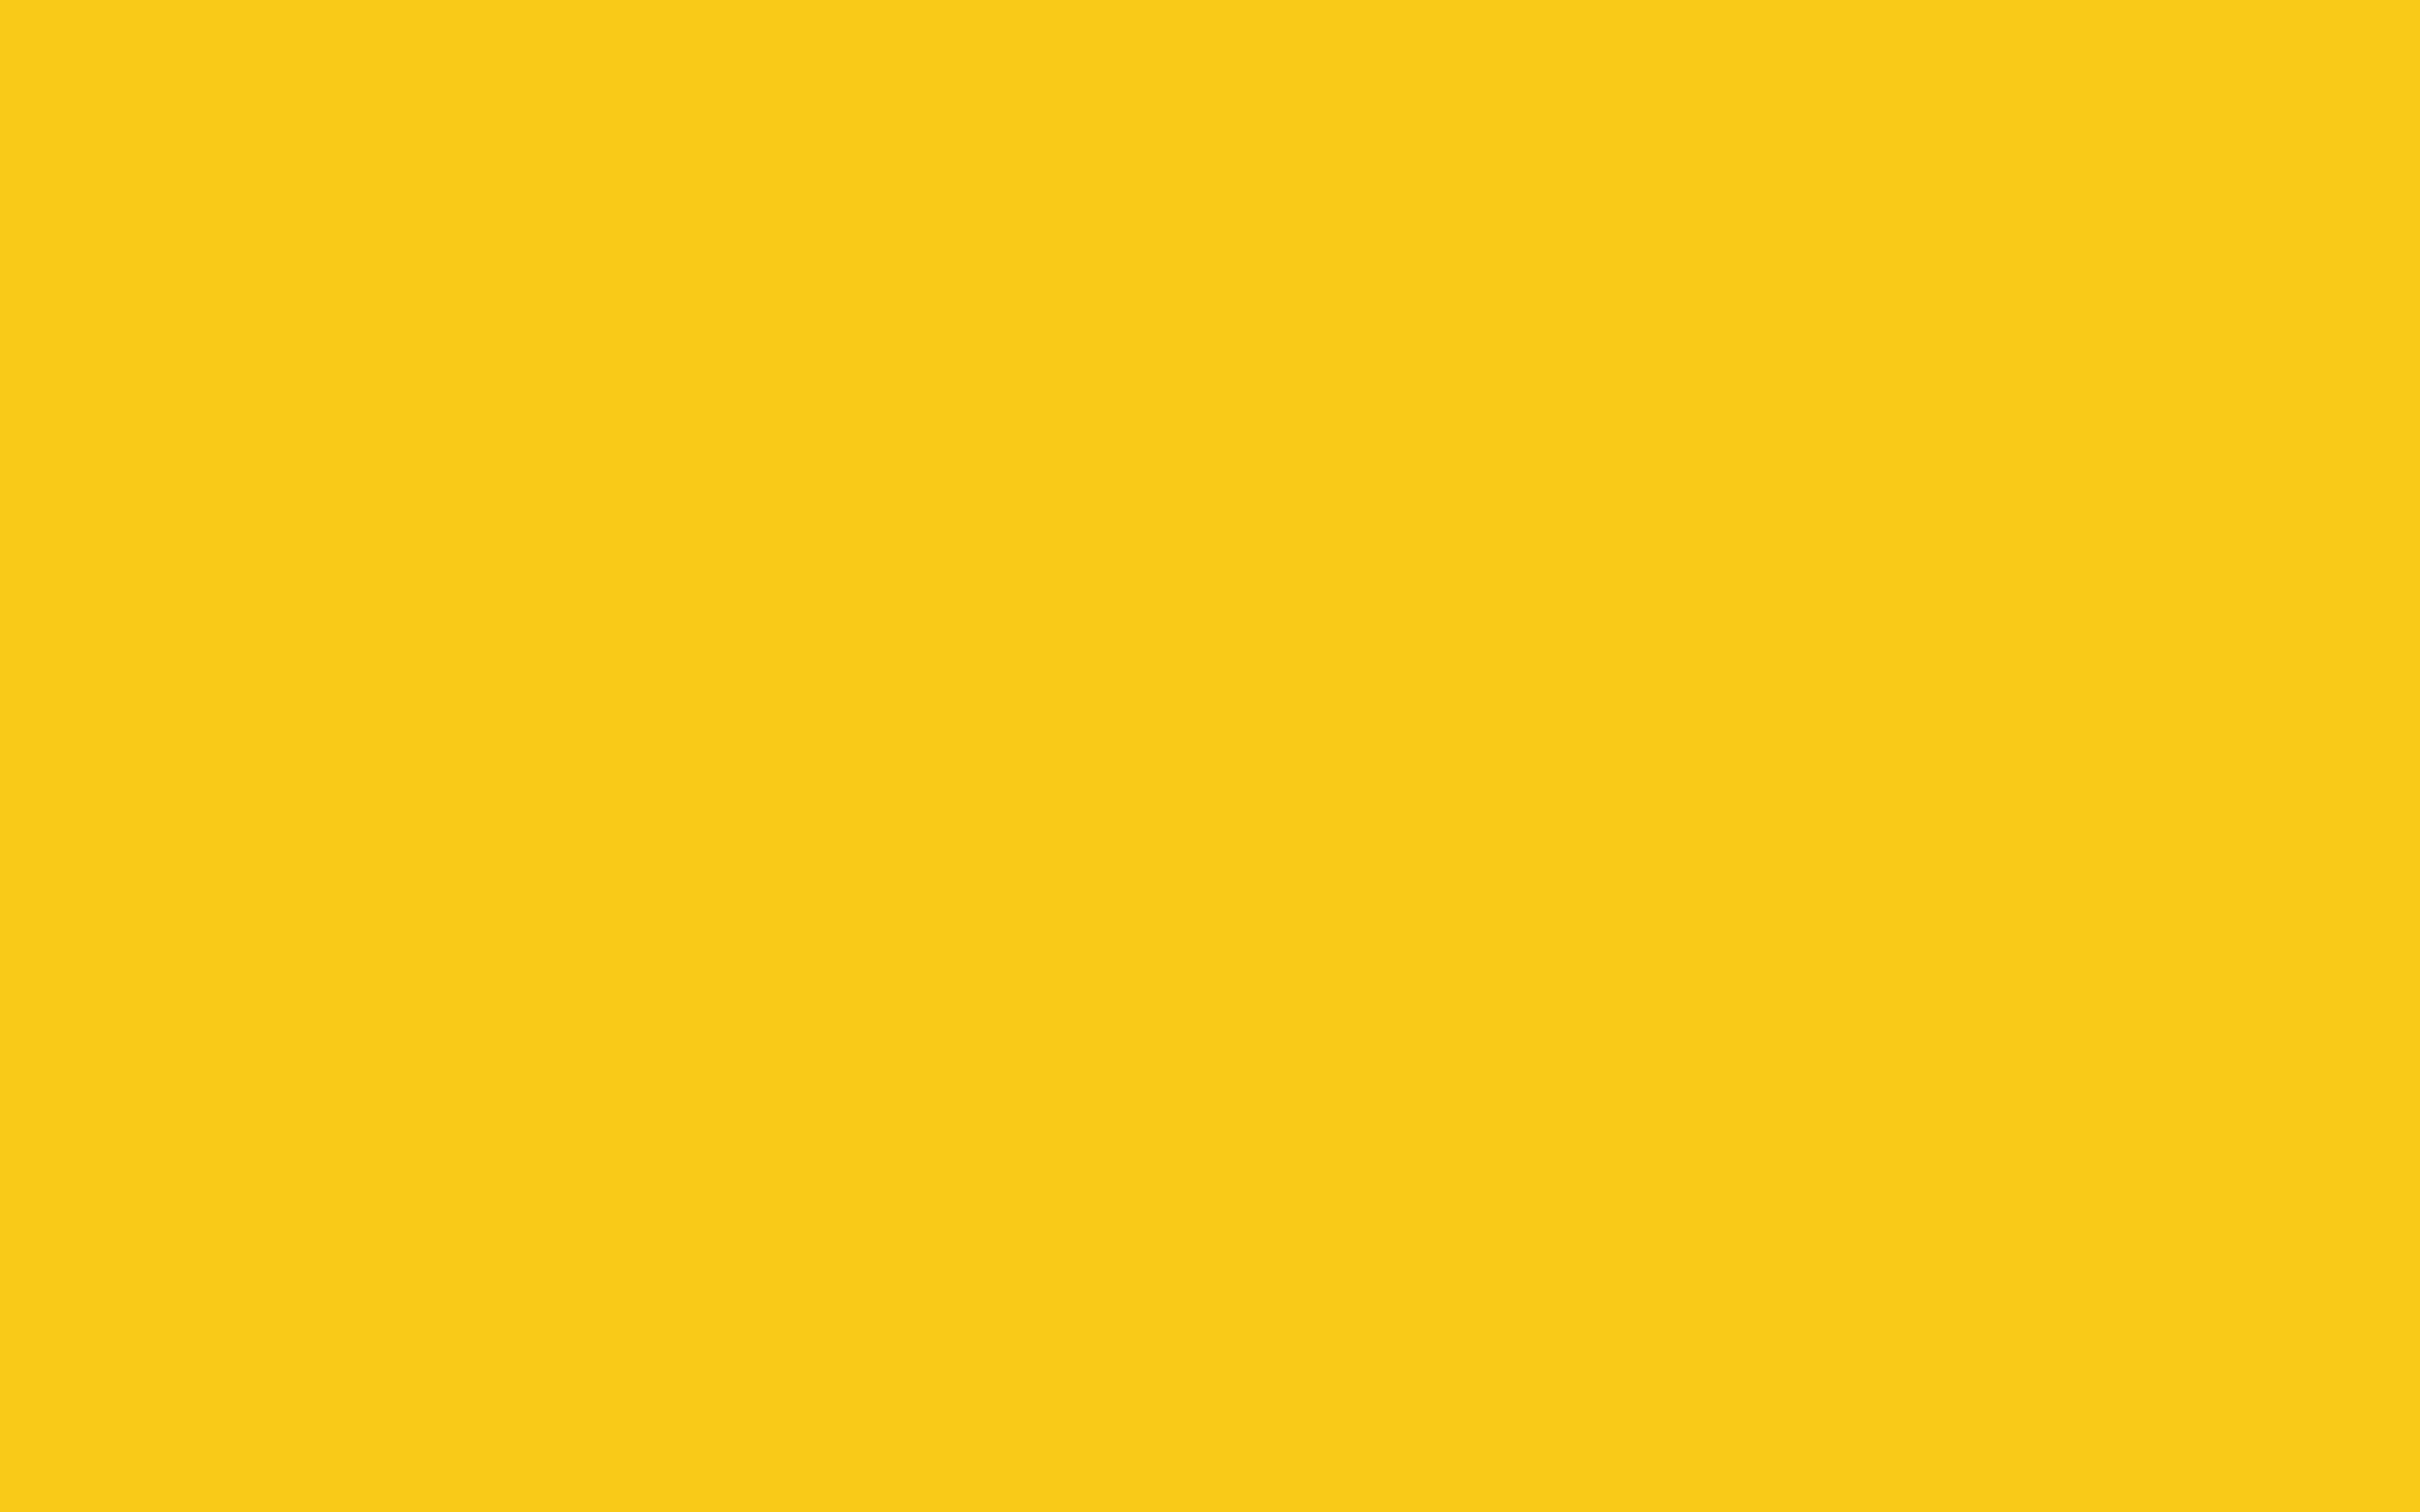 2560x1600 Jonquil Solid Color Background